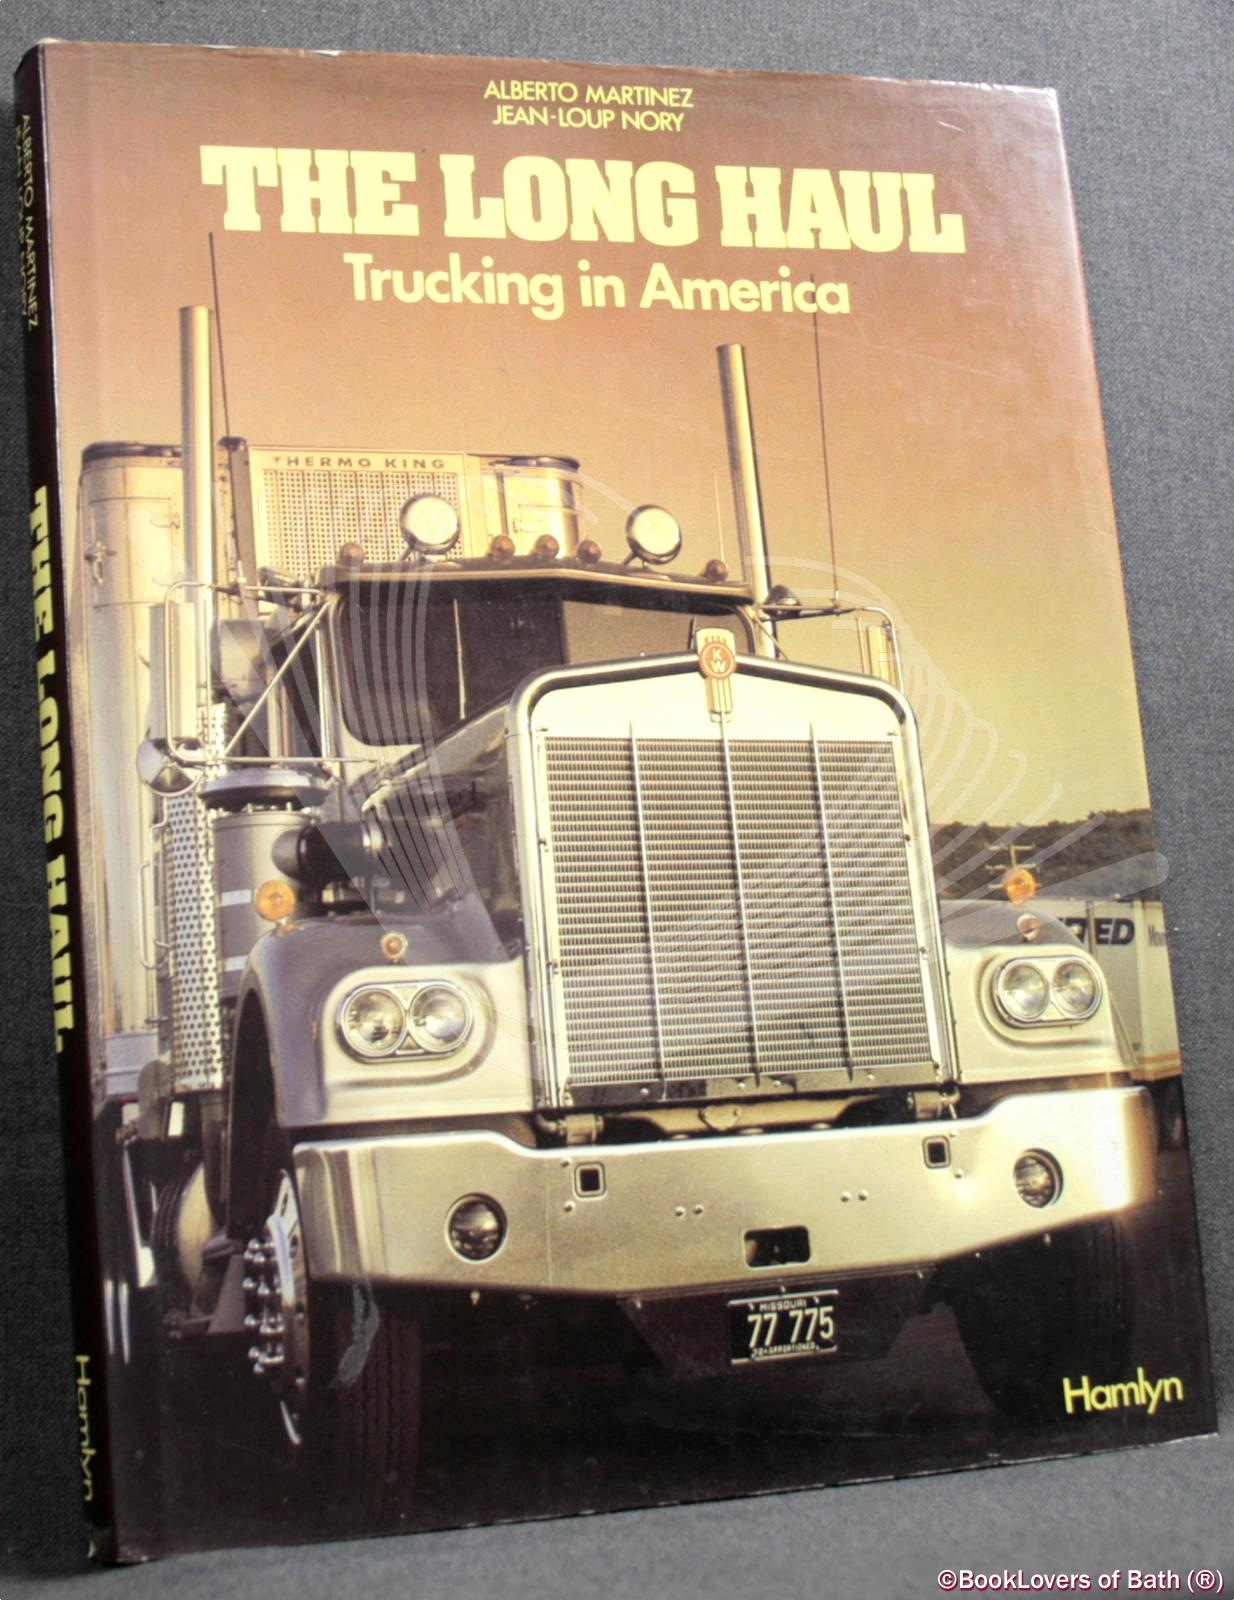 The Long Haul: Trucking in America - Alberto Martinez, Jean-Loup Nory